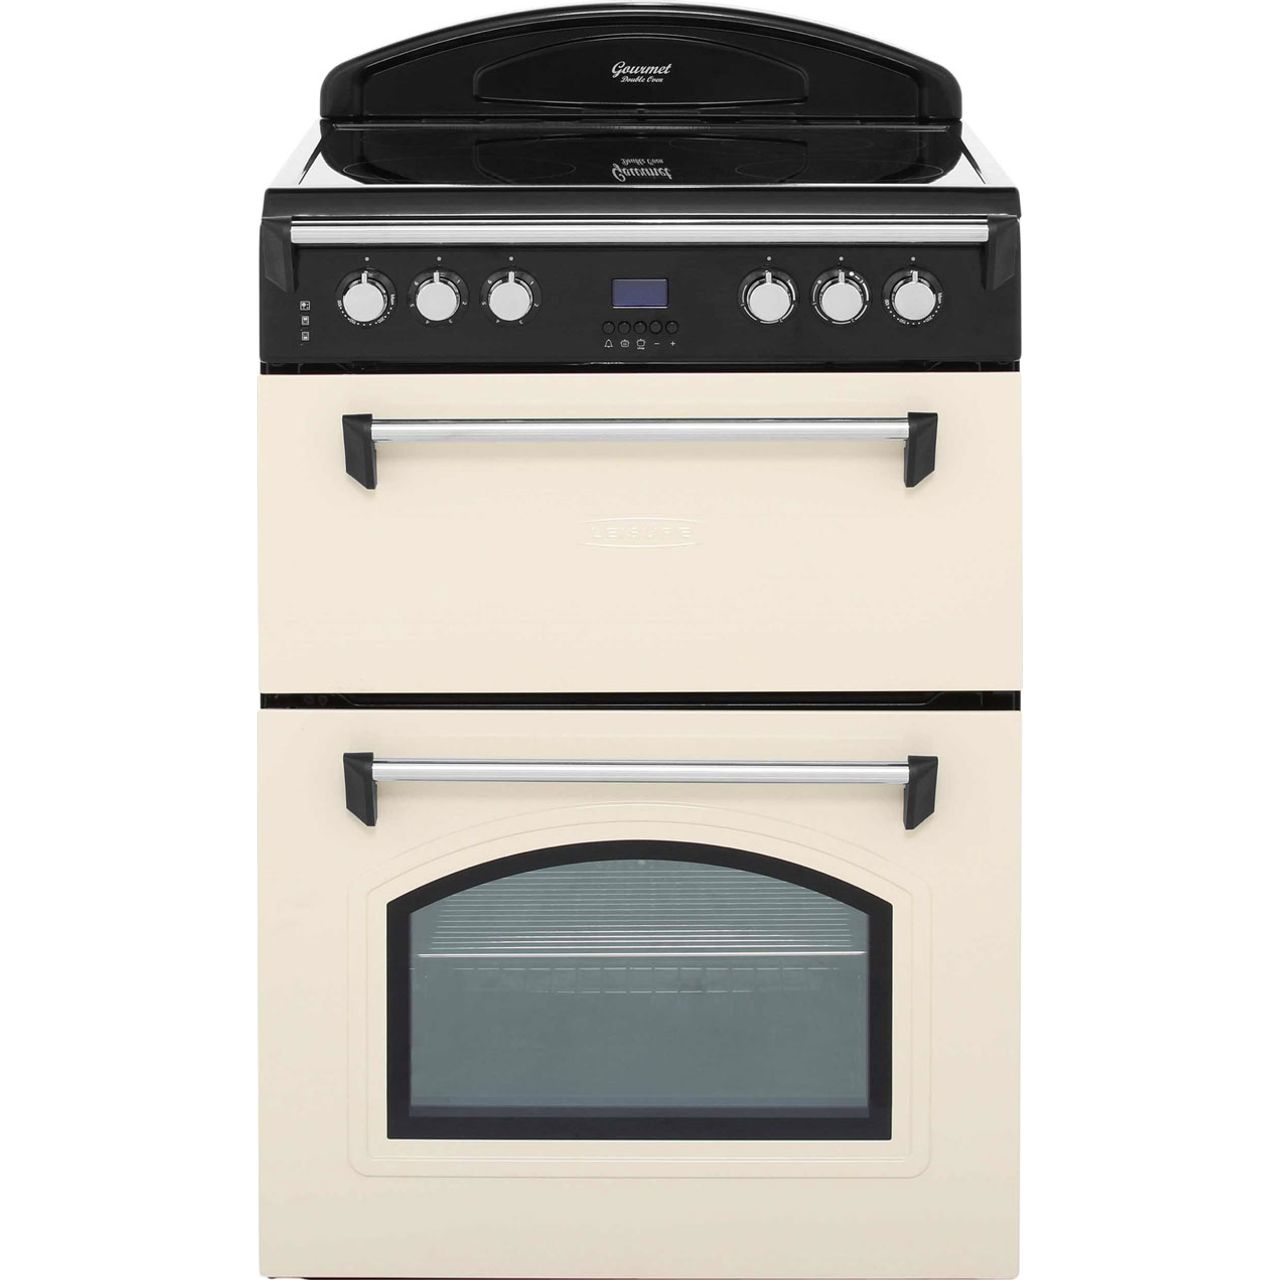 Leisure Gourmet Grb6cvc Electric Cooker With Ceramic Hob